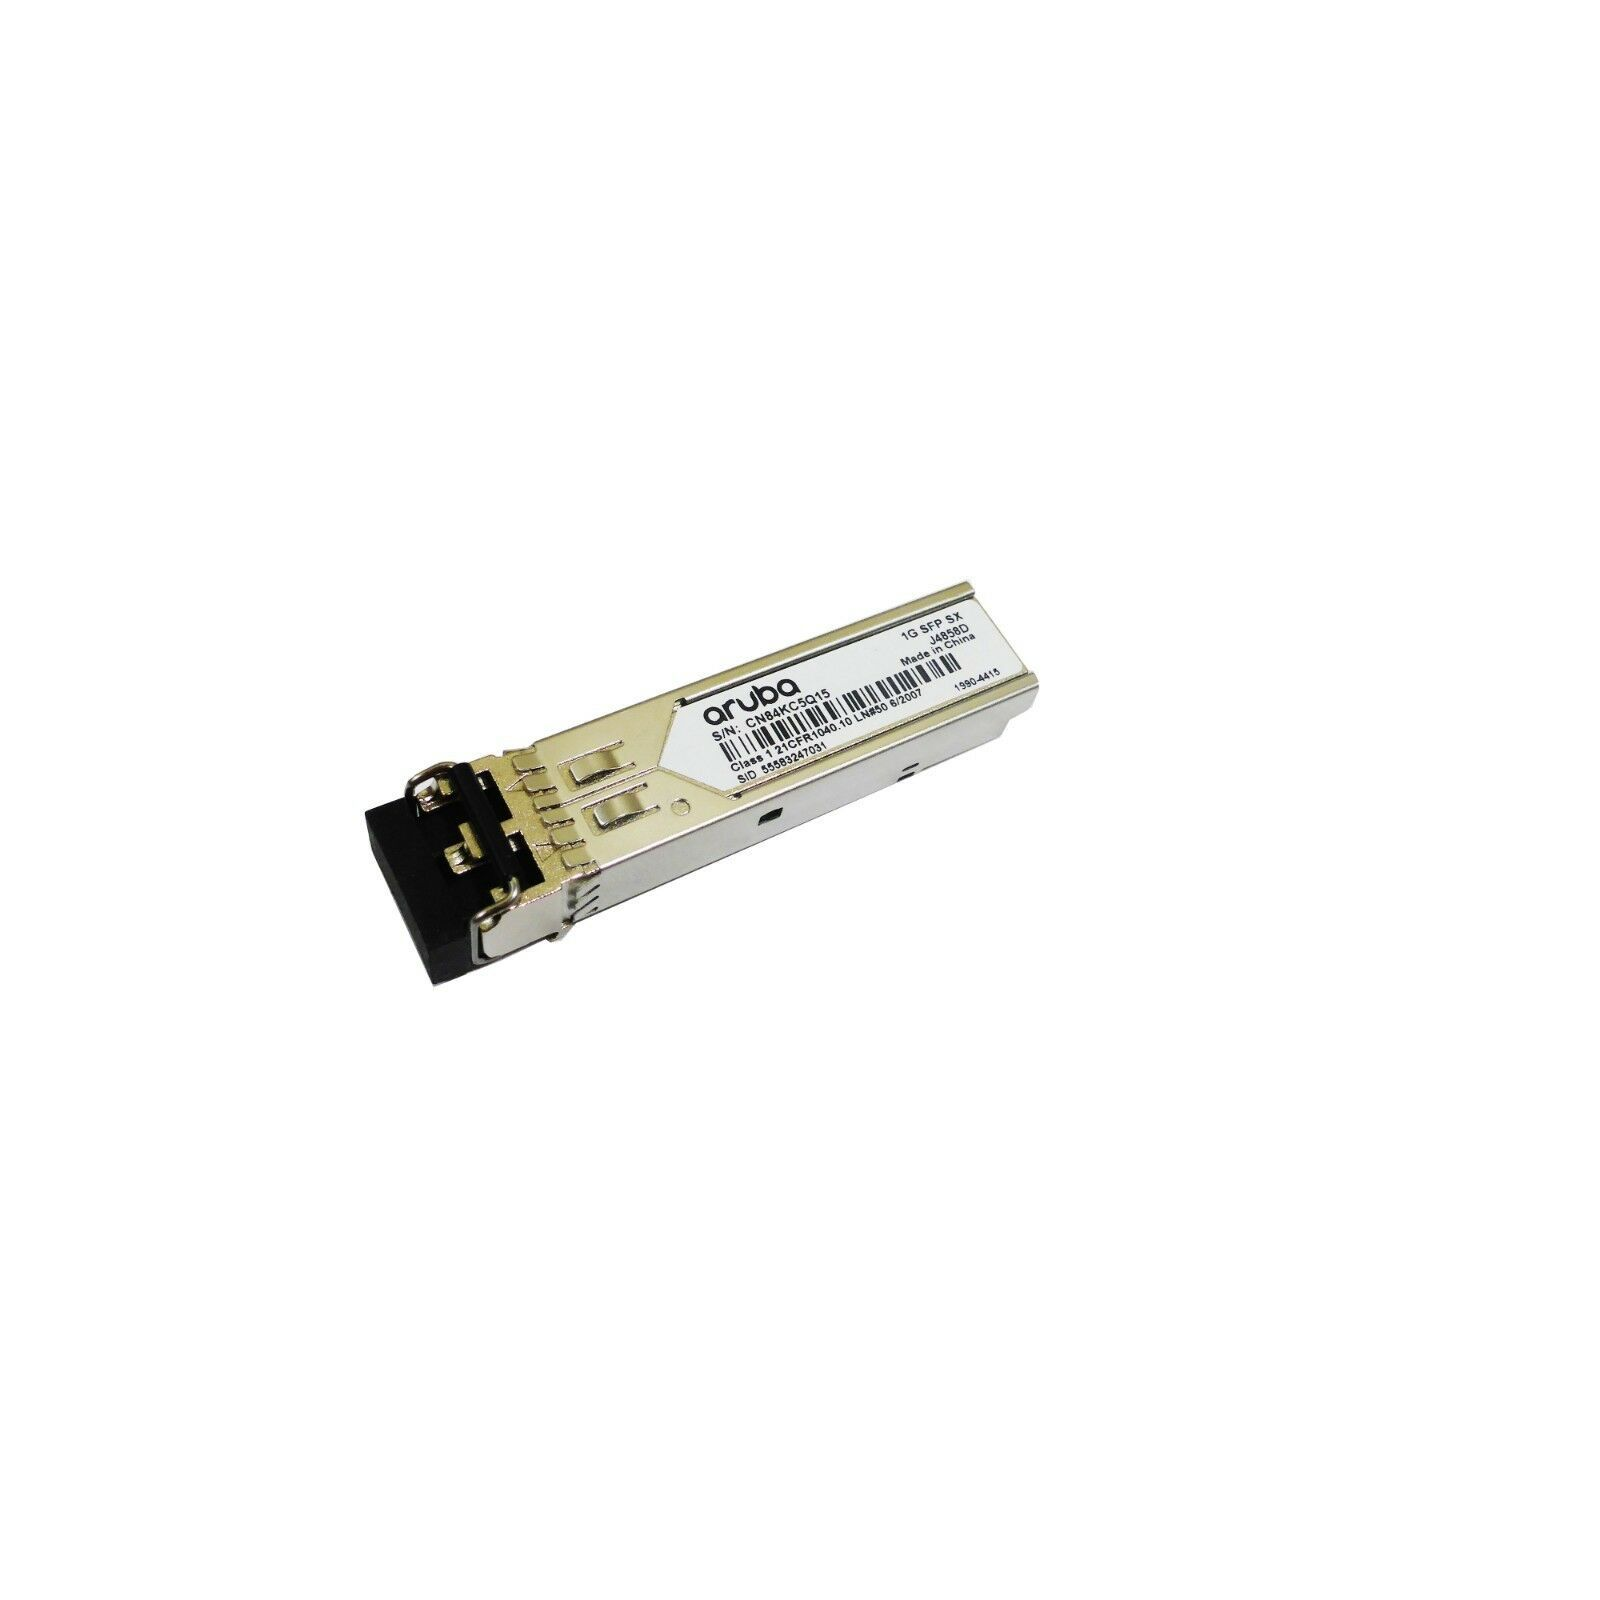 Ebay Link Ad Sfp 10gbase T Transceiver Copper Rj45 Module Compatible For Cisco Sfp 10g T S In 2020 Rj45 Cisco Ebay